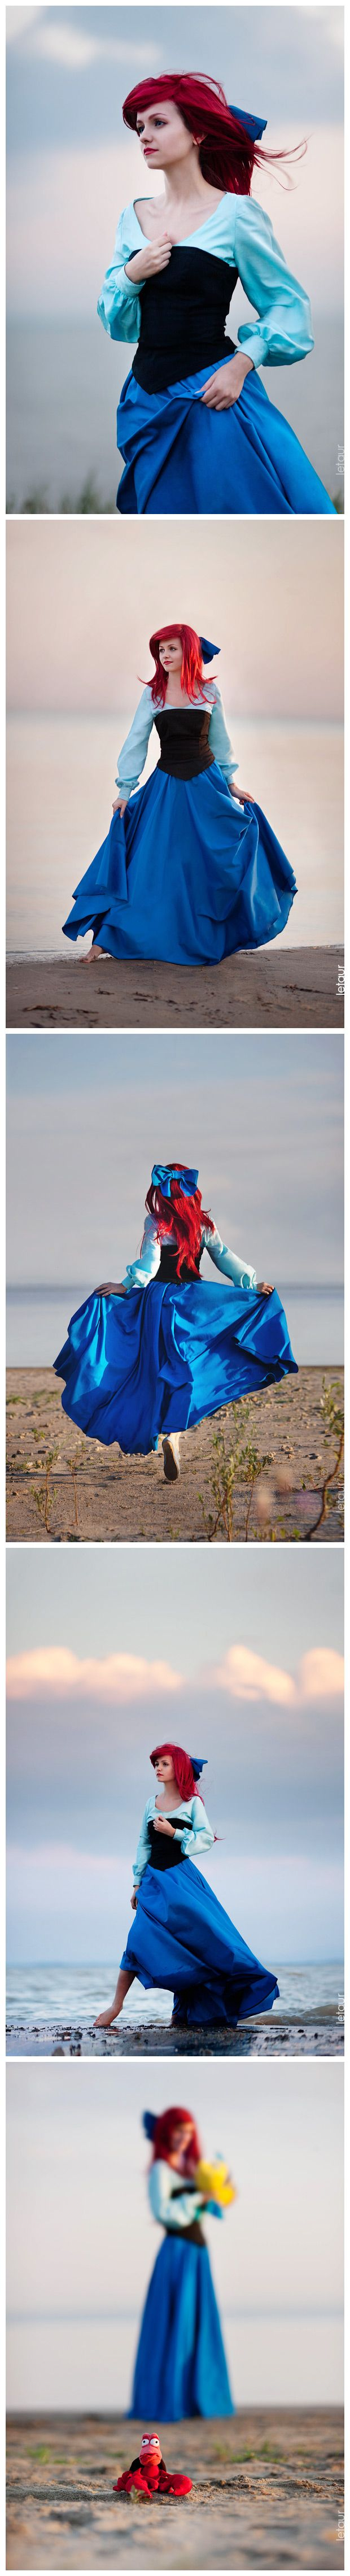 Ariel's town dress, Disney's The Little Mermaid - I love it! Future Halloween costume? :)